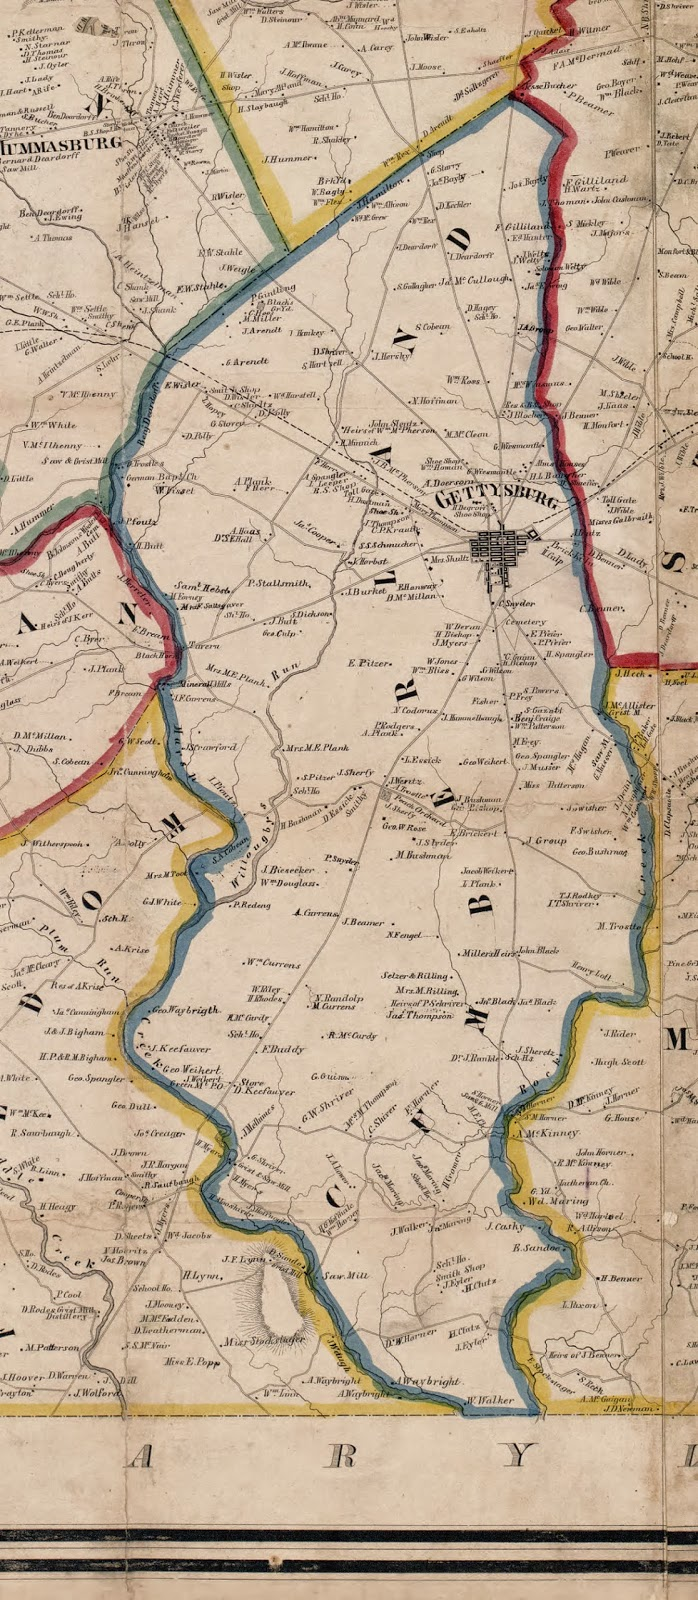 last year i found a lovely 1858 map of adams county pennsylvania that labeled the actual homes of landowner ancestors samuel hartzell and david heagy sr